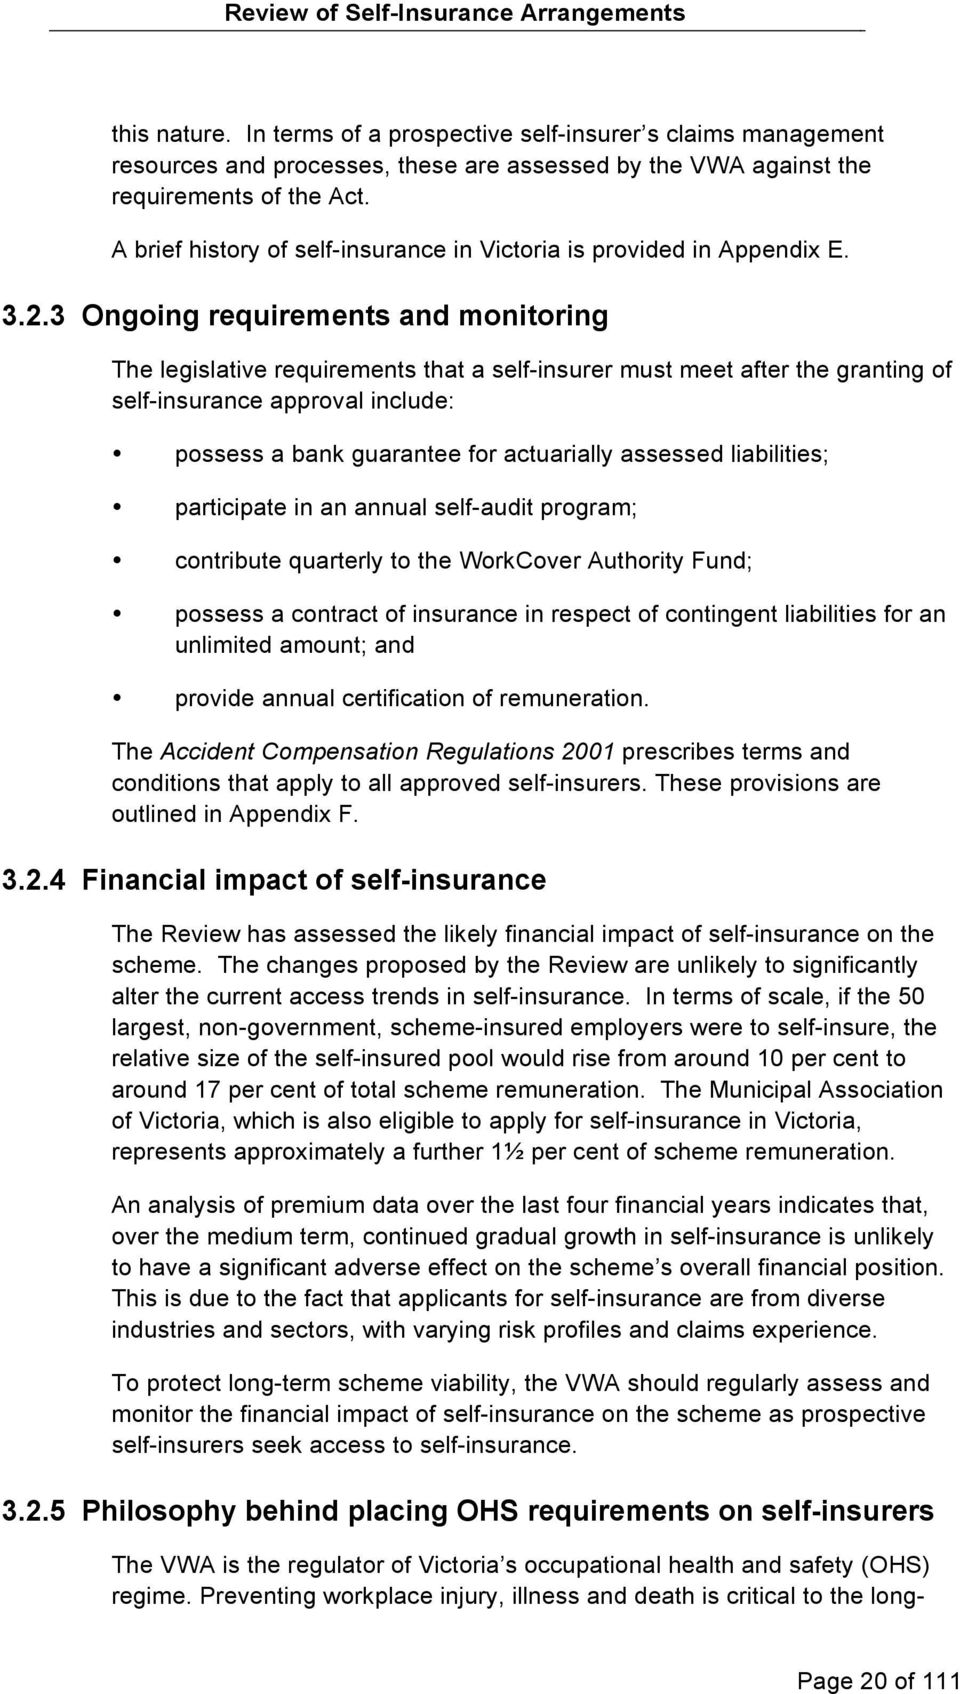 3 Ongoing requirements and monitoring The legislative requirements that a self-insurer must meet after the granting of self-insurance approval include: possess a bank guarantee for actuarially